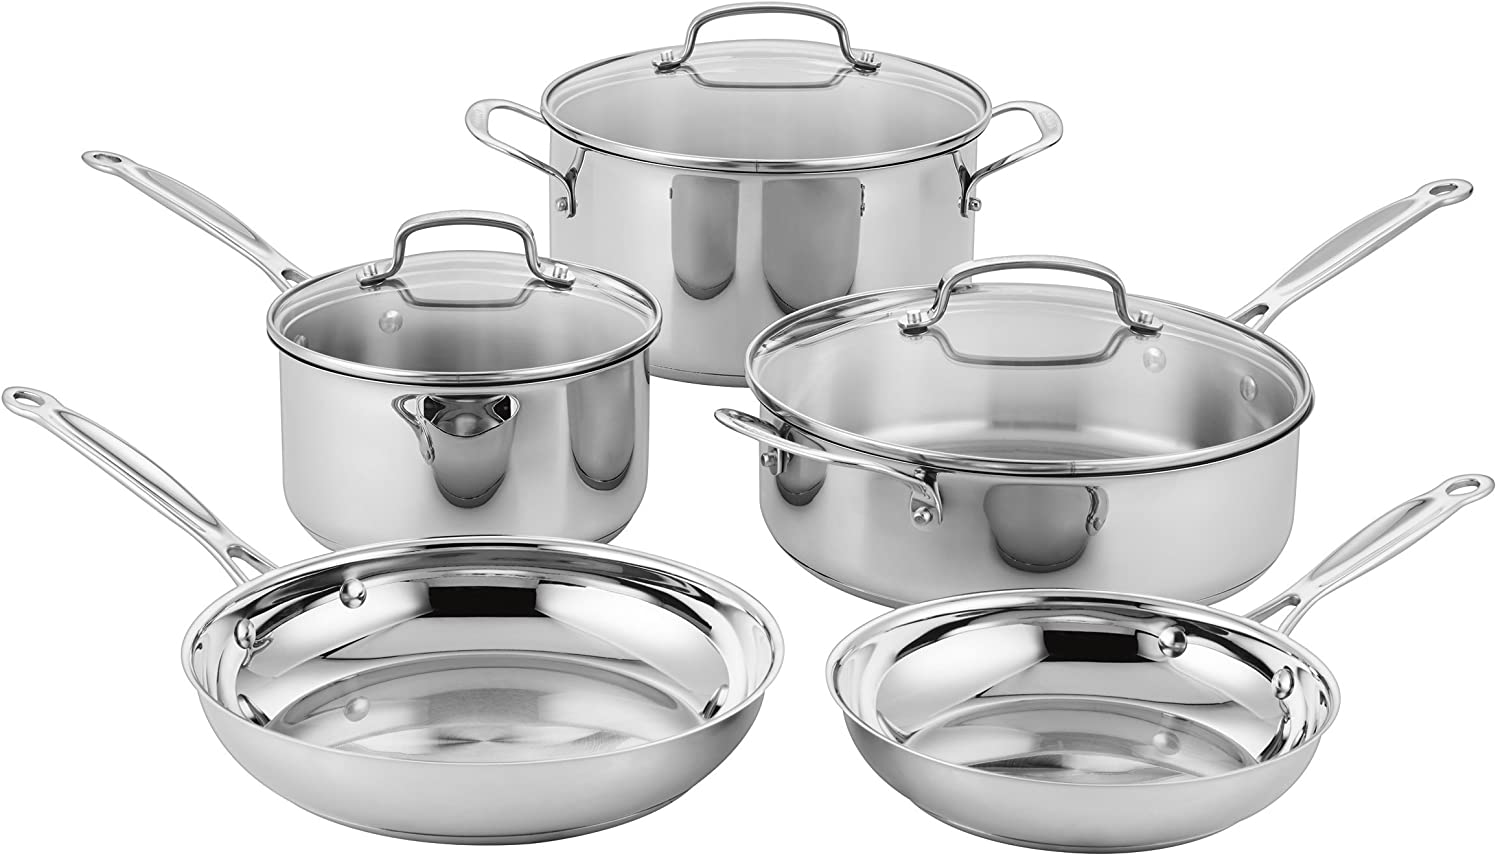 10 Top Rated Best Stainless Steel Cookware Sets For Kitchen